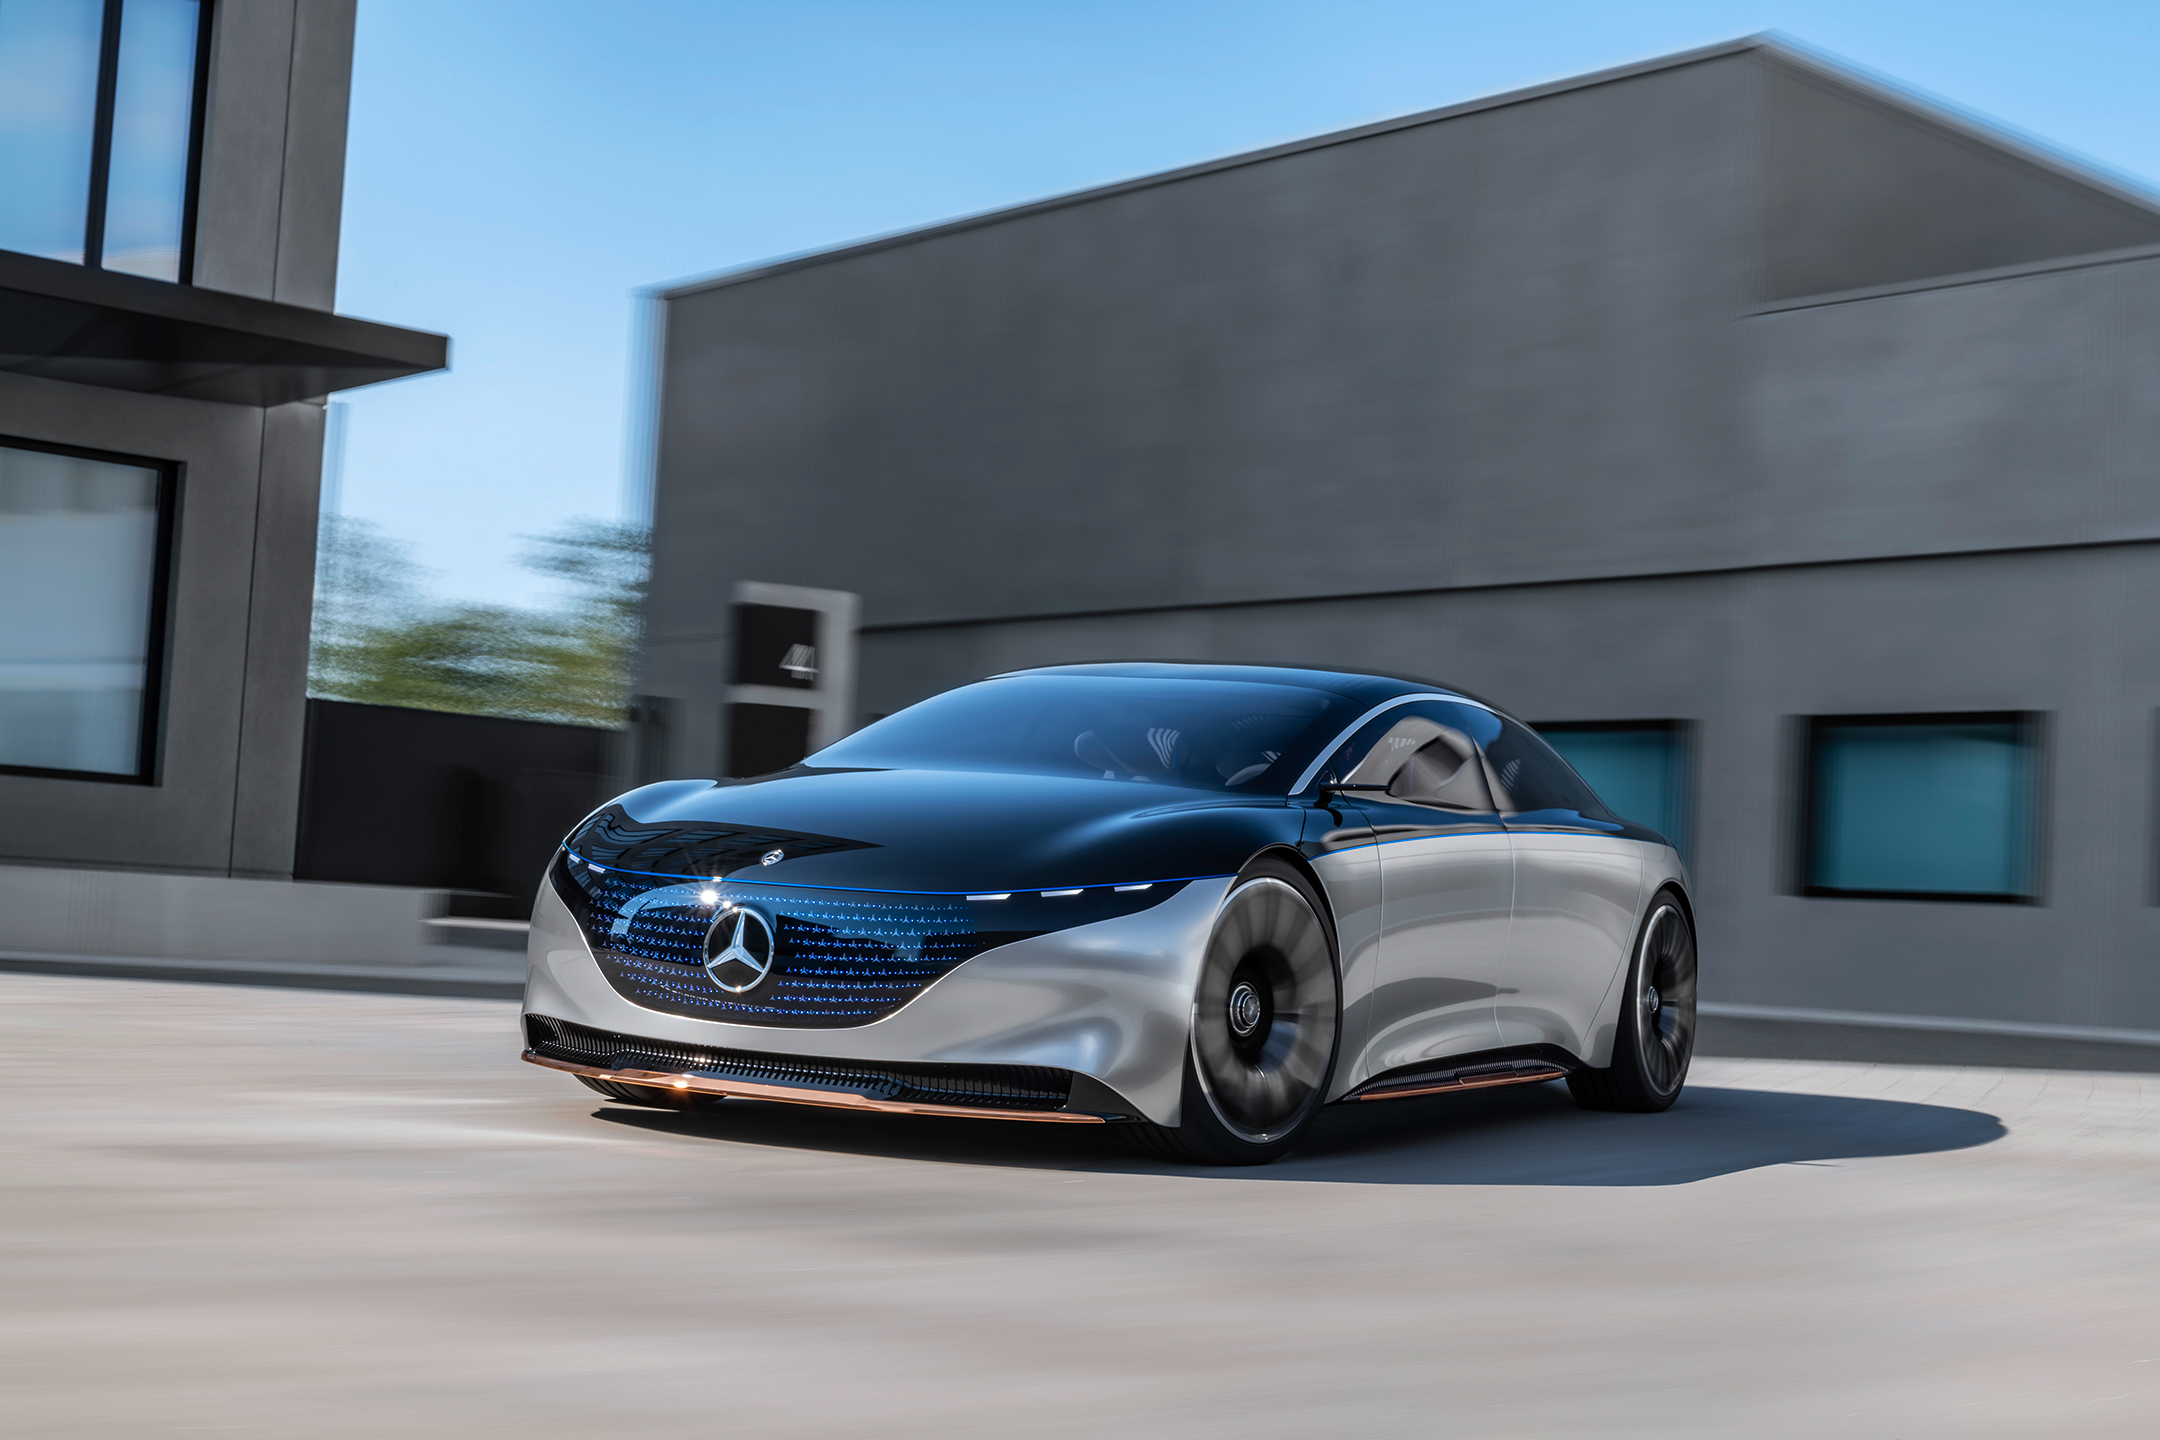 Mercedes-Benz Vision EQS show car - 2020 - front side-face / profil avant